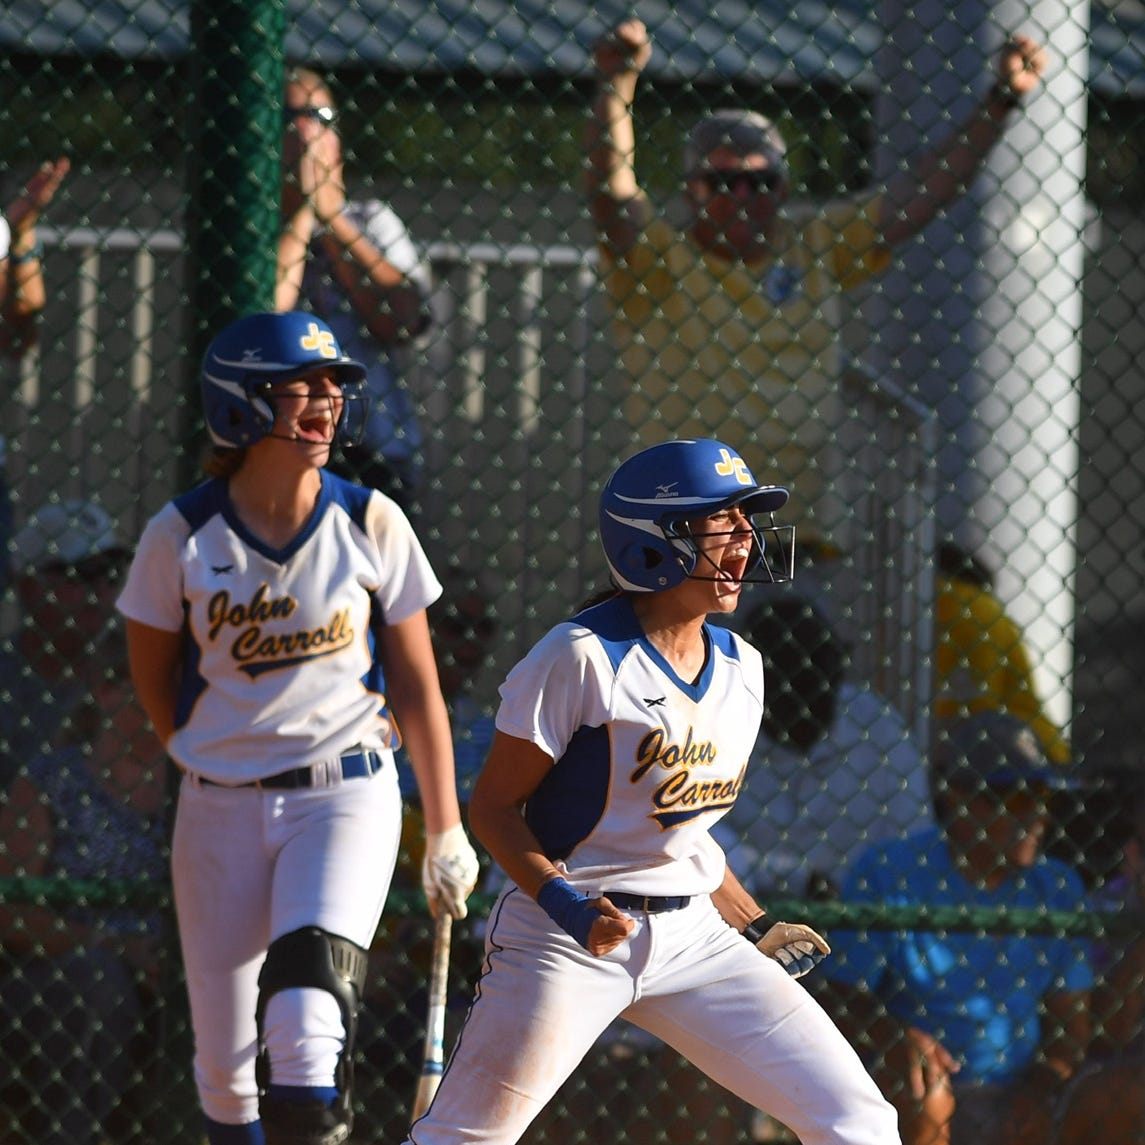 Seven-run inning propels John Carroll softball to state championship game